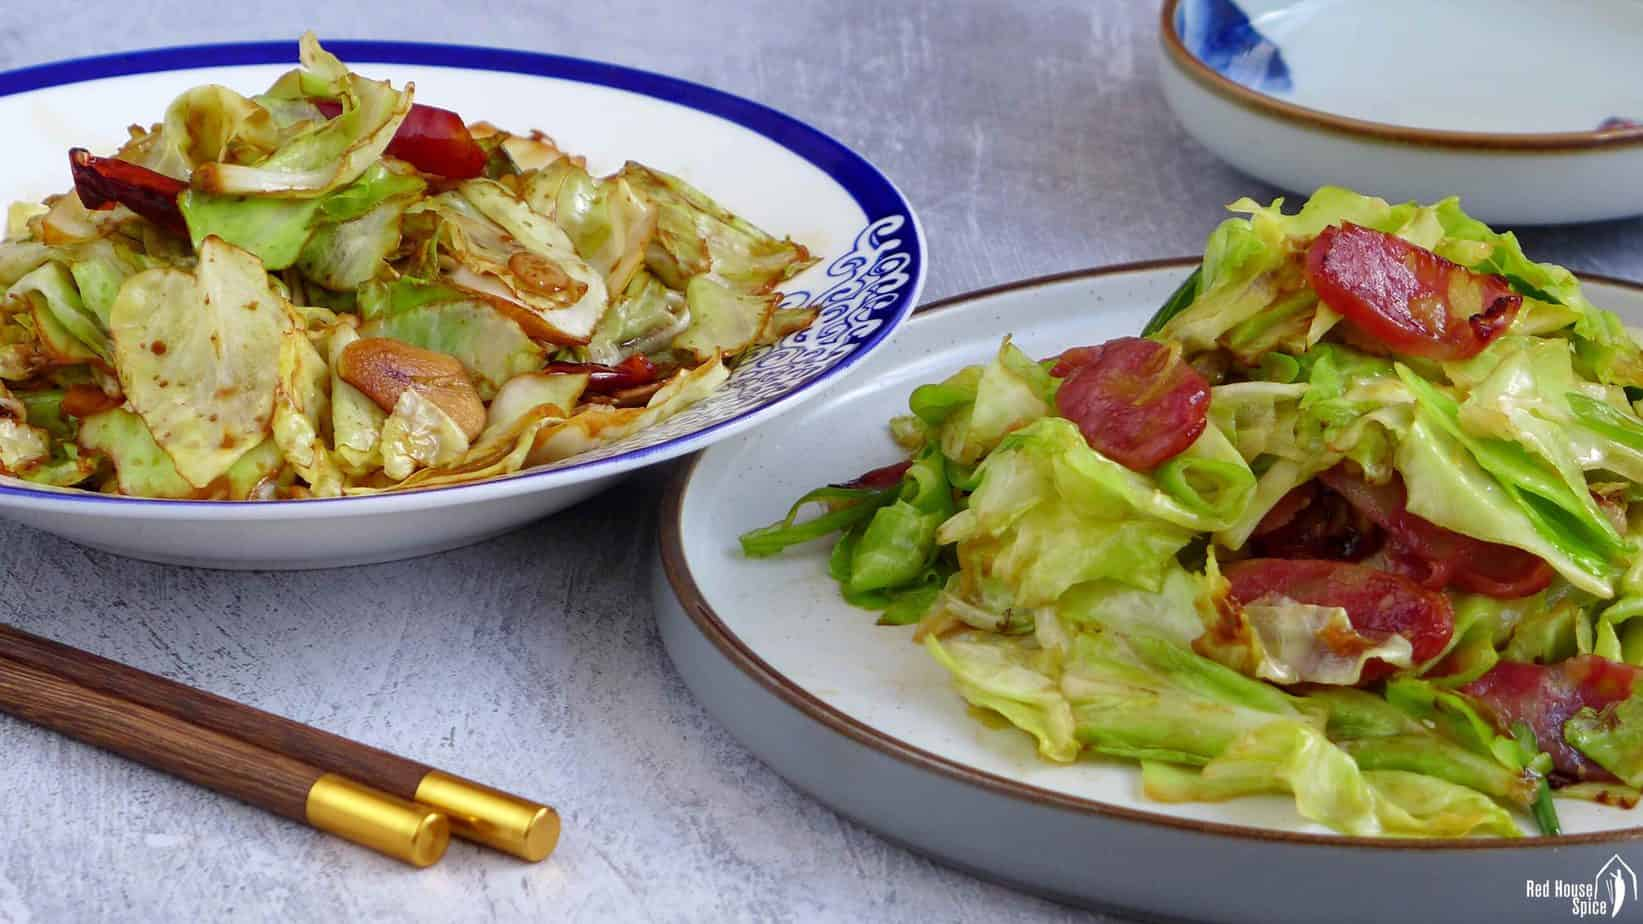 Two plates of stir-fried cabbage